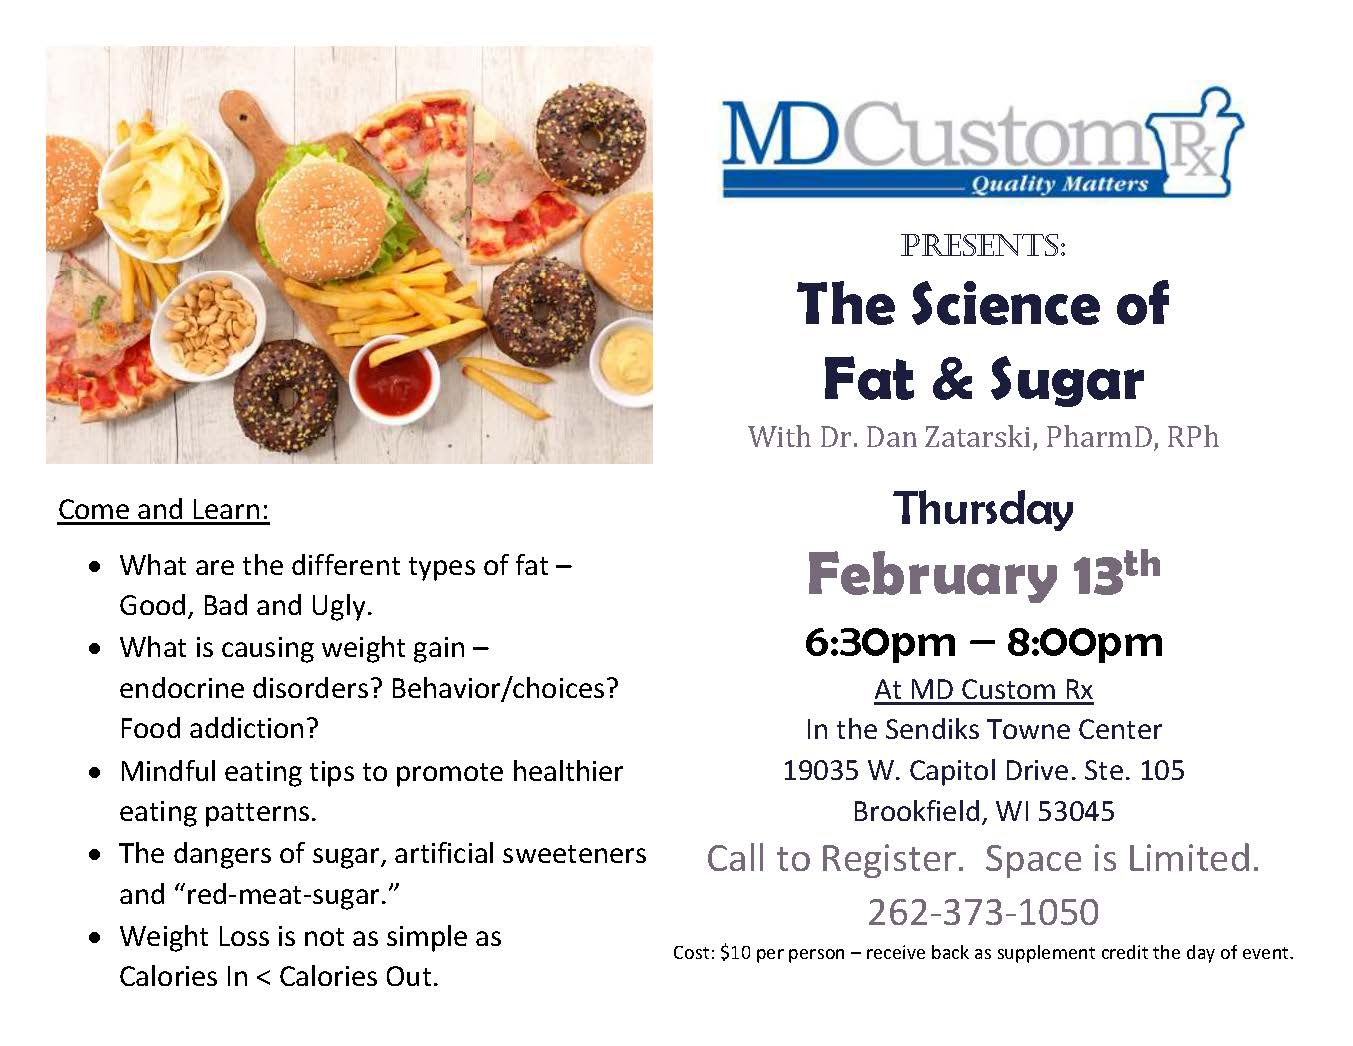 The Science of Fat & Sugar